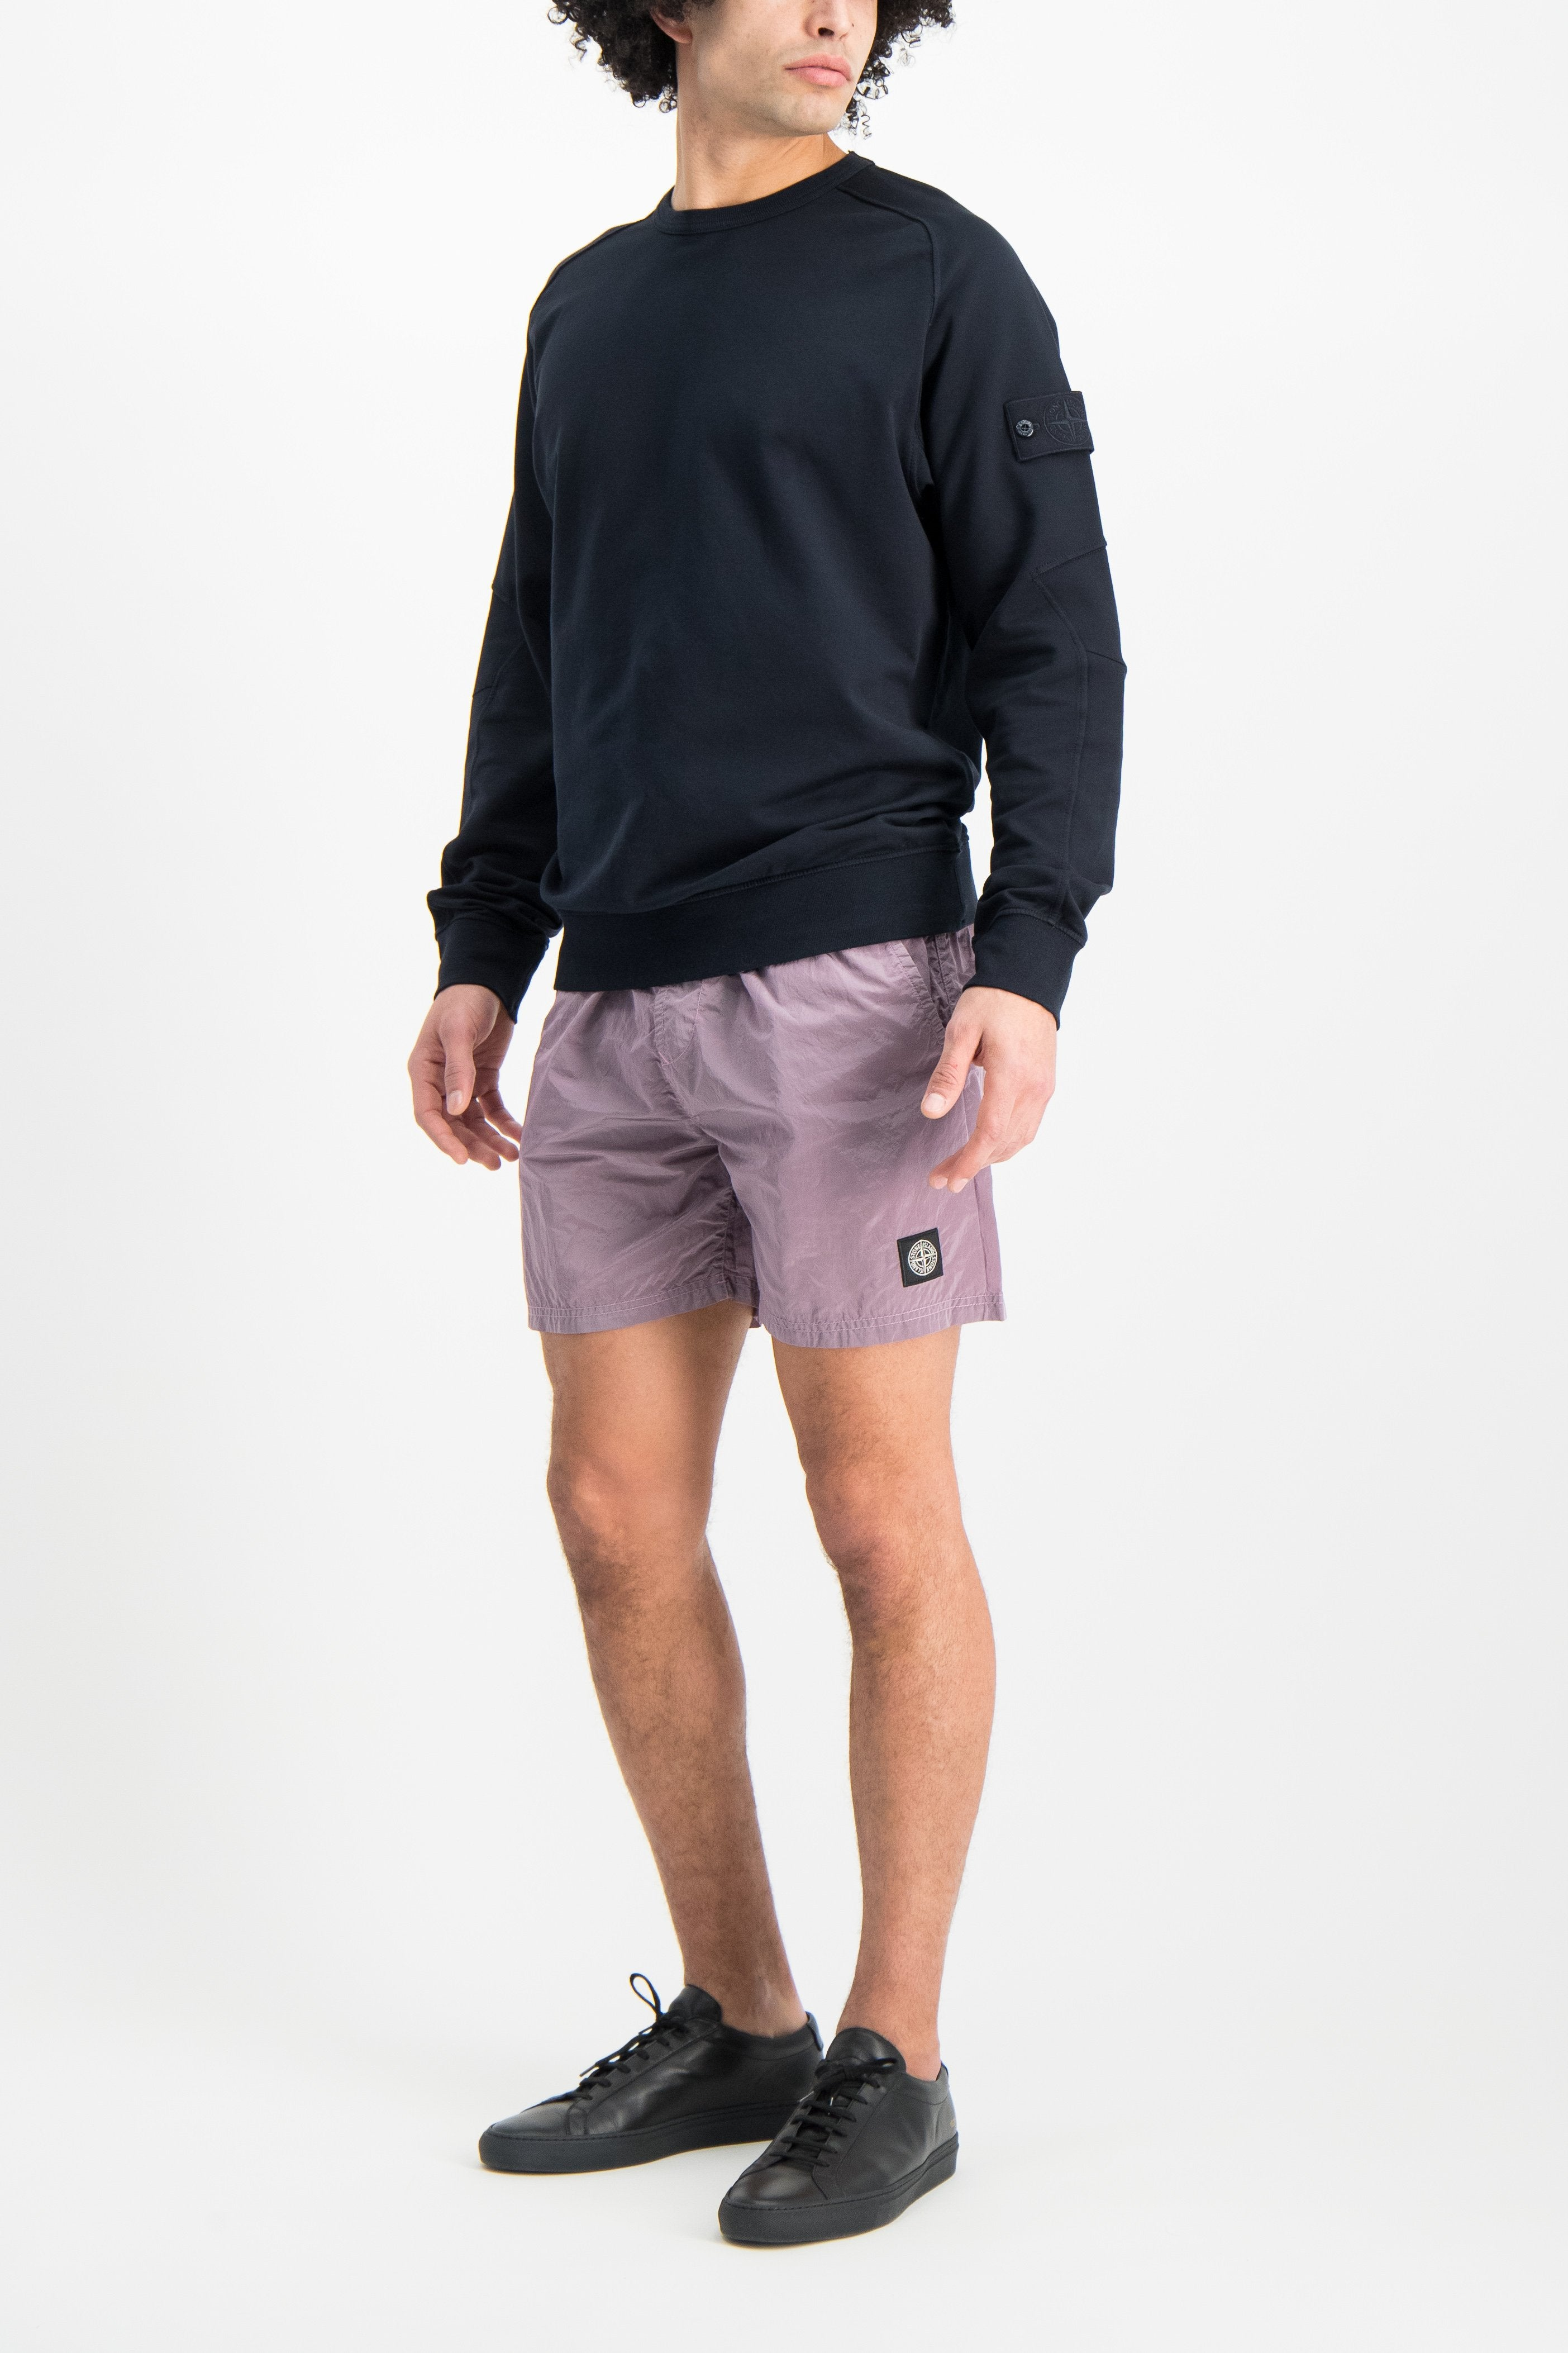 Full Body Image Of Model Wearing Casual Short Rose Quartz